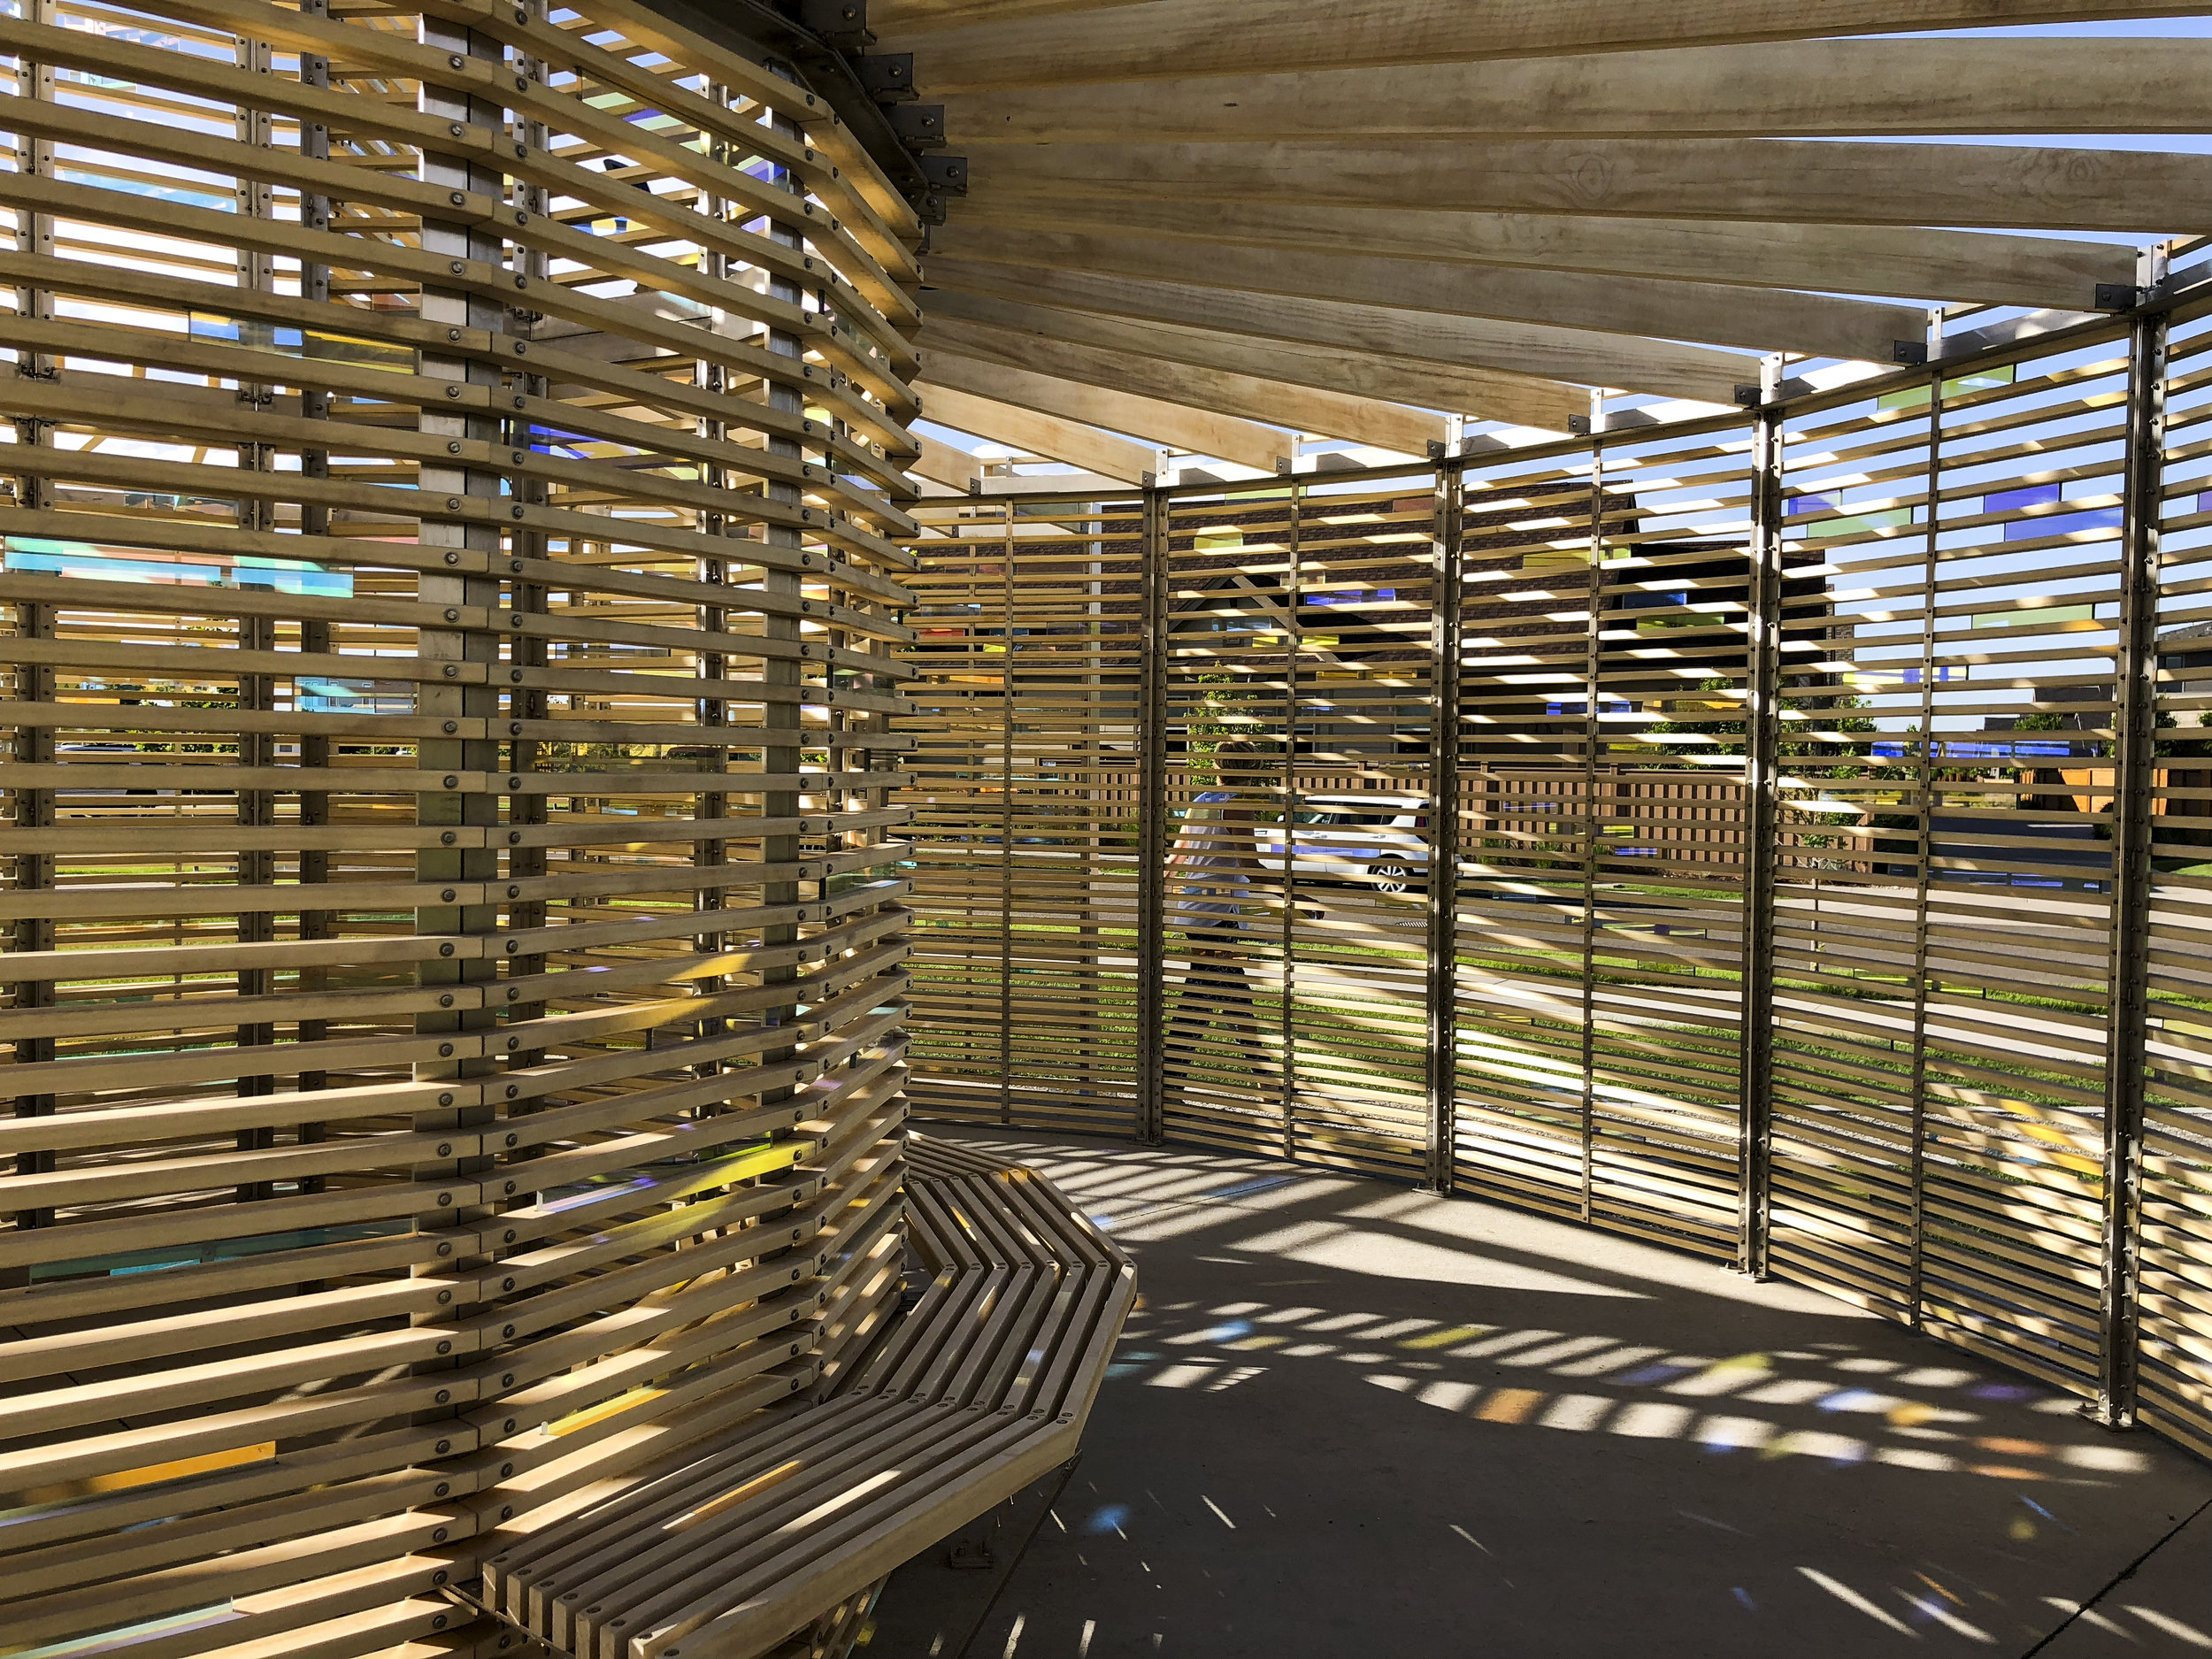 Catherine Widgery_Woven Light_Stapleton_Denver_Colorado_Public Art Services_J Grant Projects_6.jpg